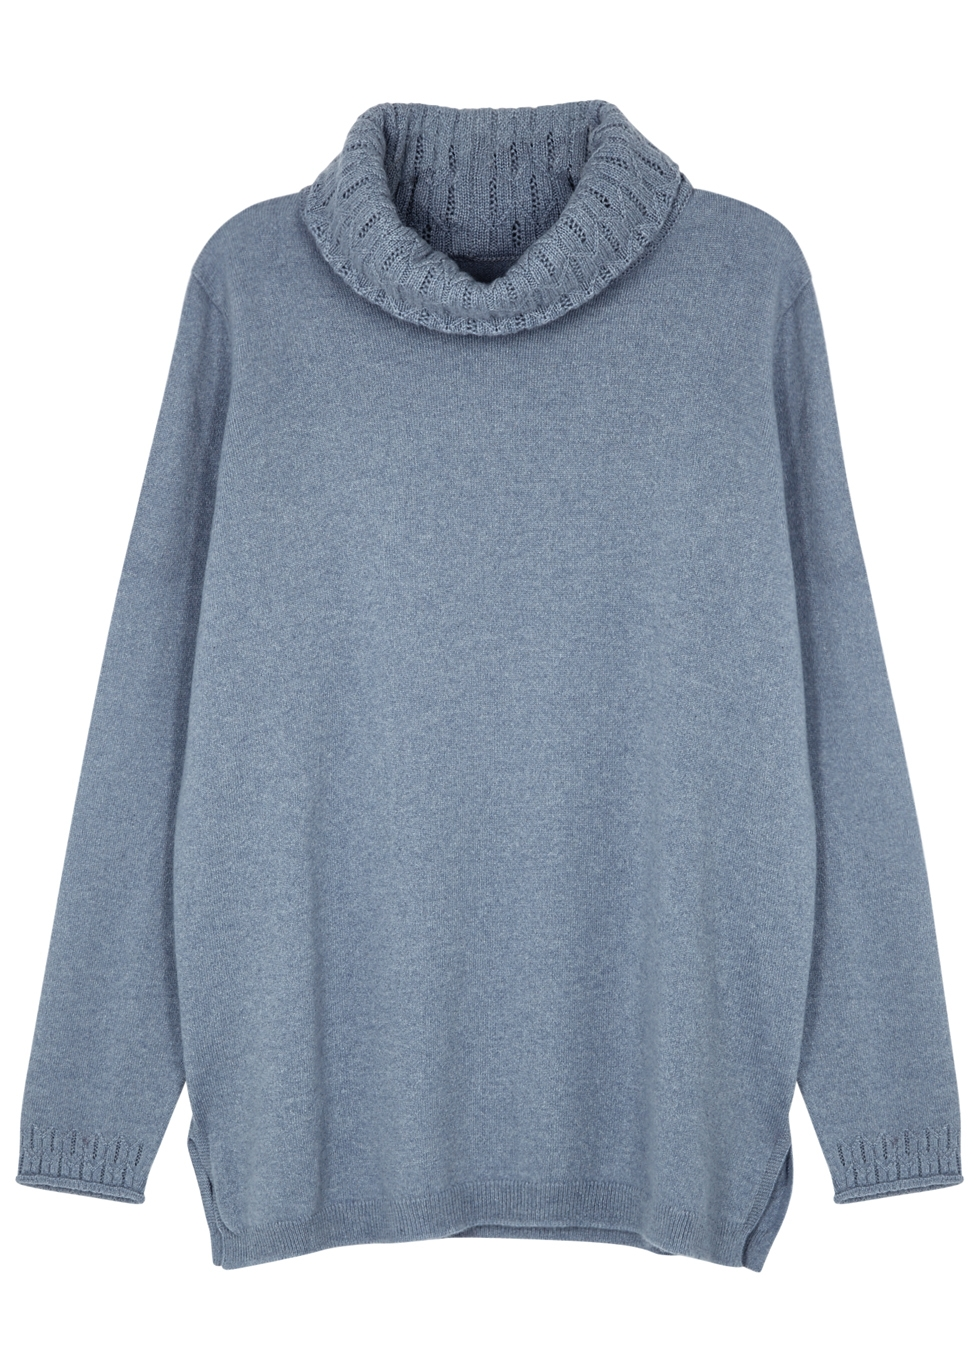 HAWICO PENCARROW ROLL-NECK CASHMERE JUMPER